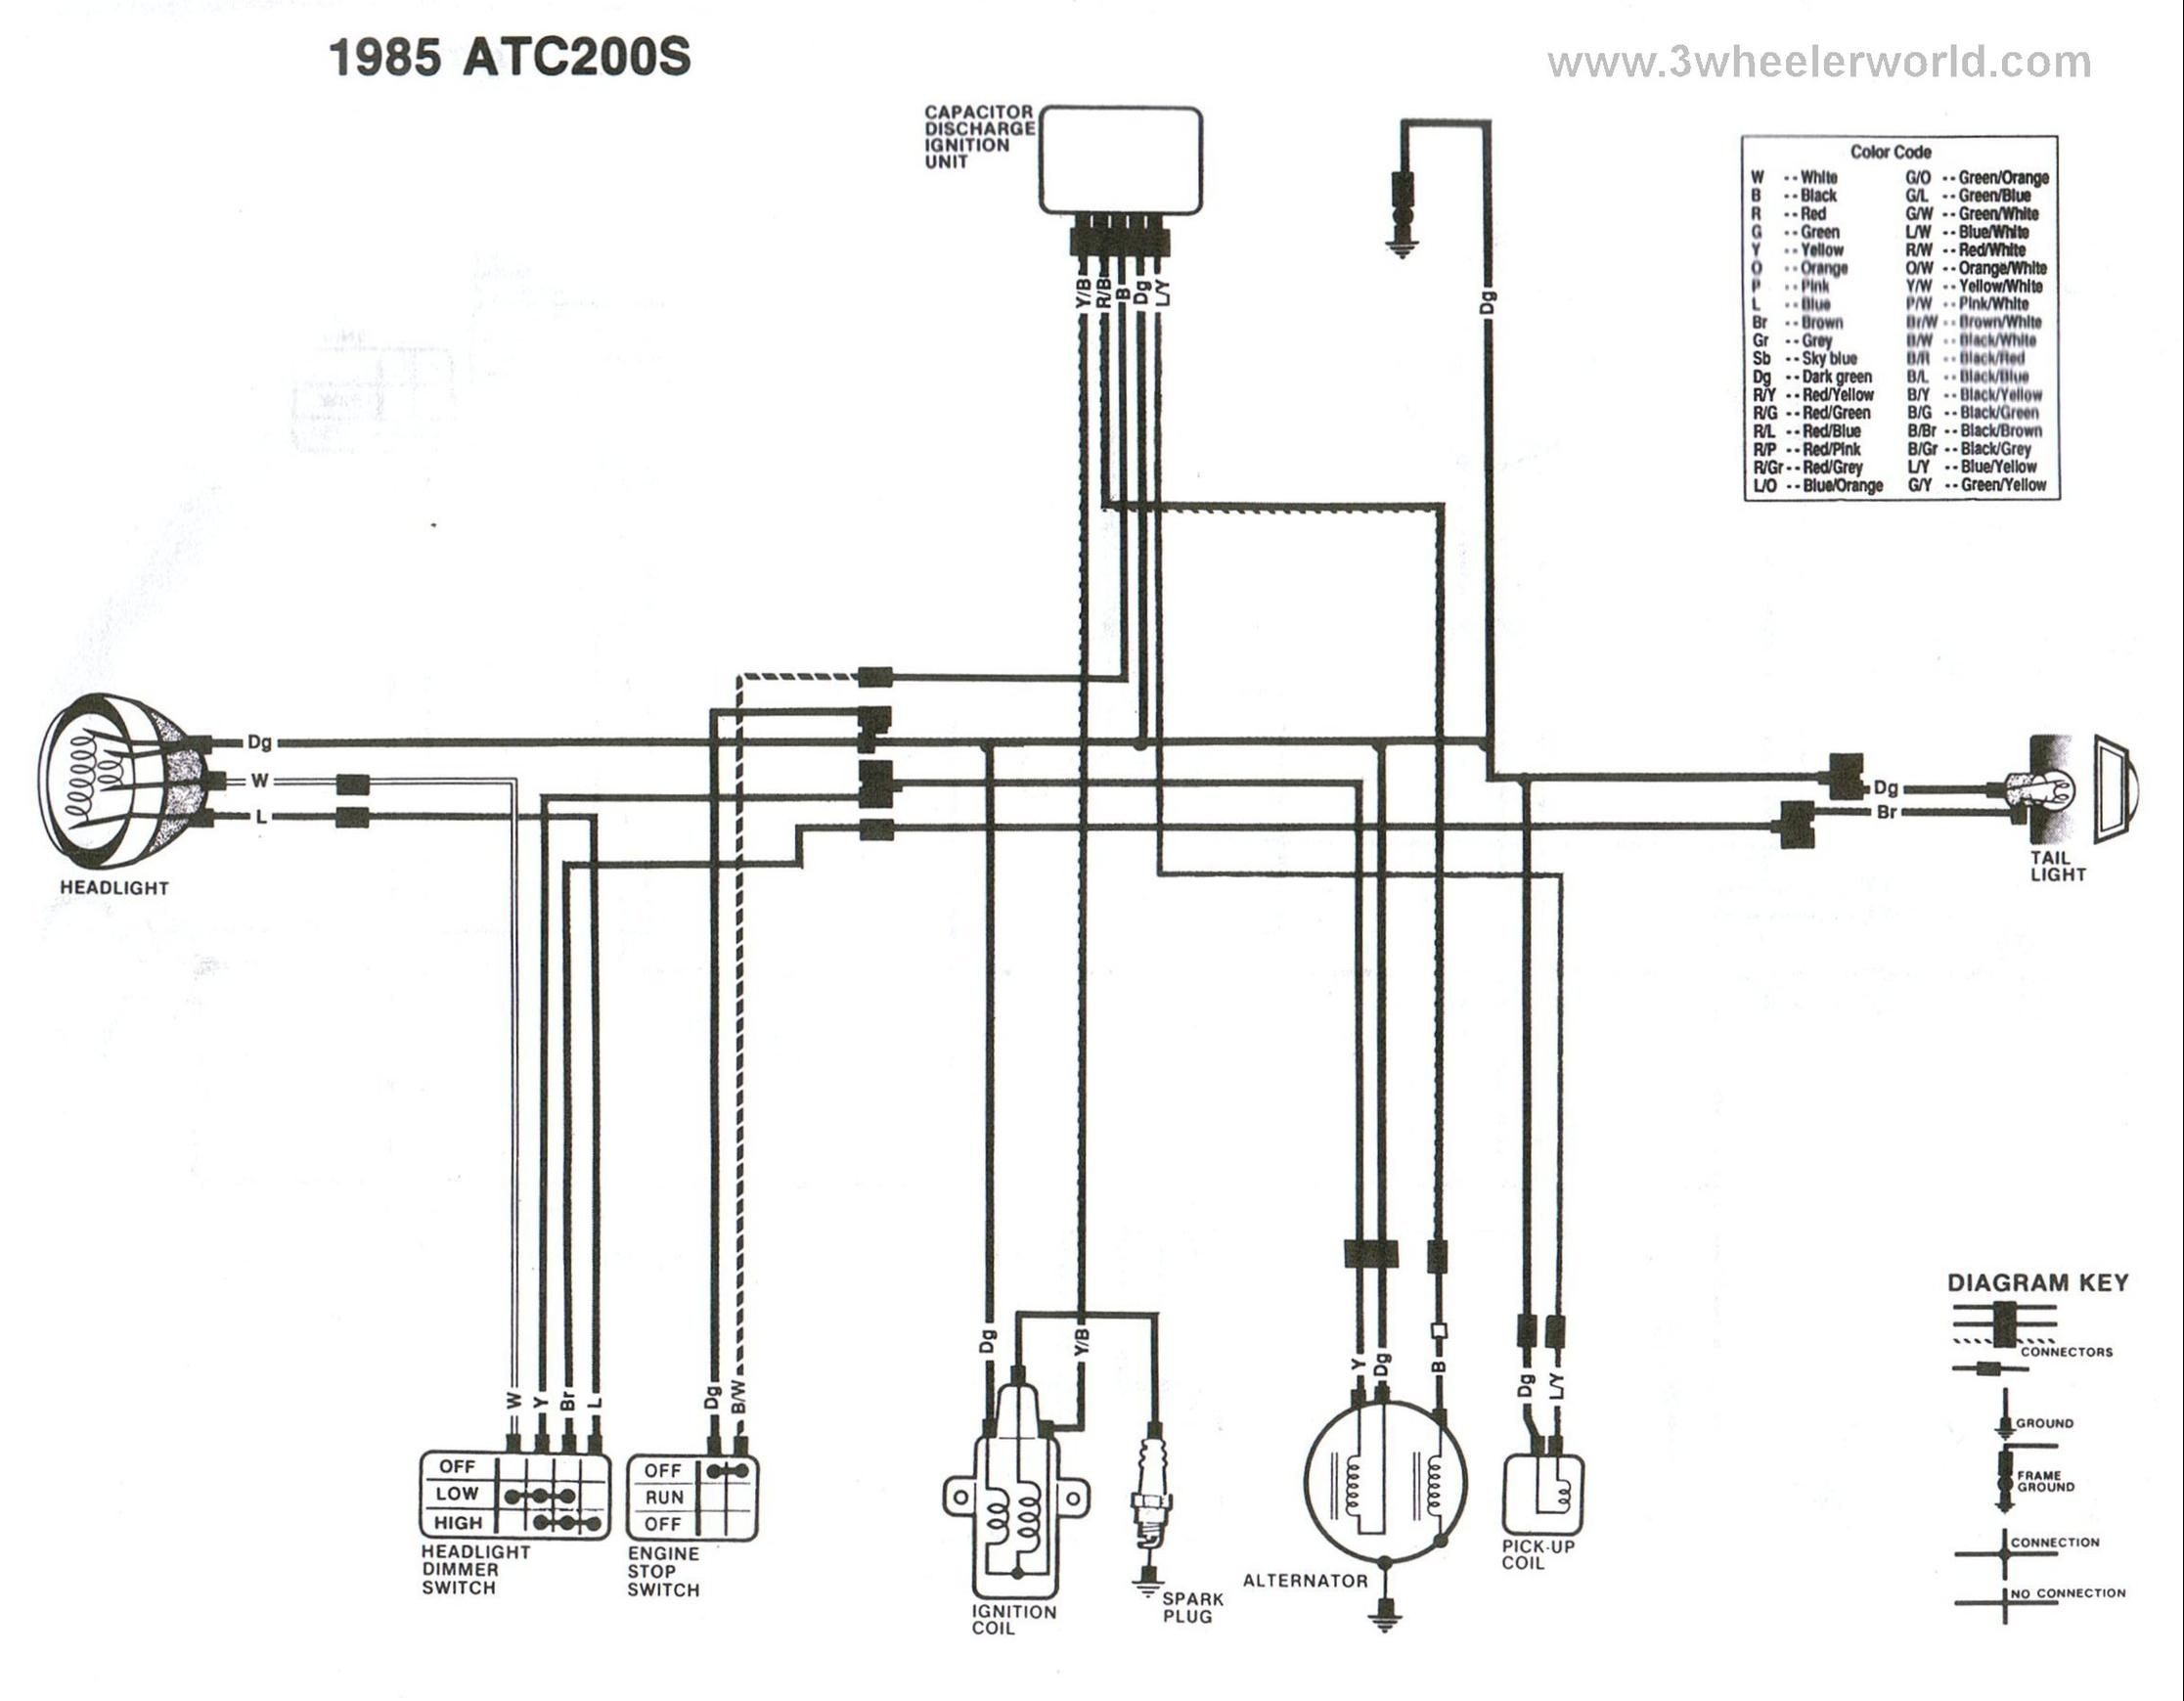 Wiring Diagram For A Honda Trx 250 4 Wheeler from www.3wheelerworld.com